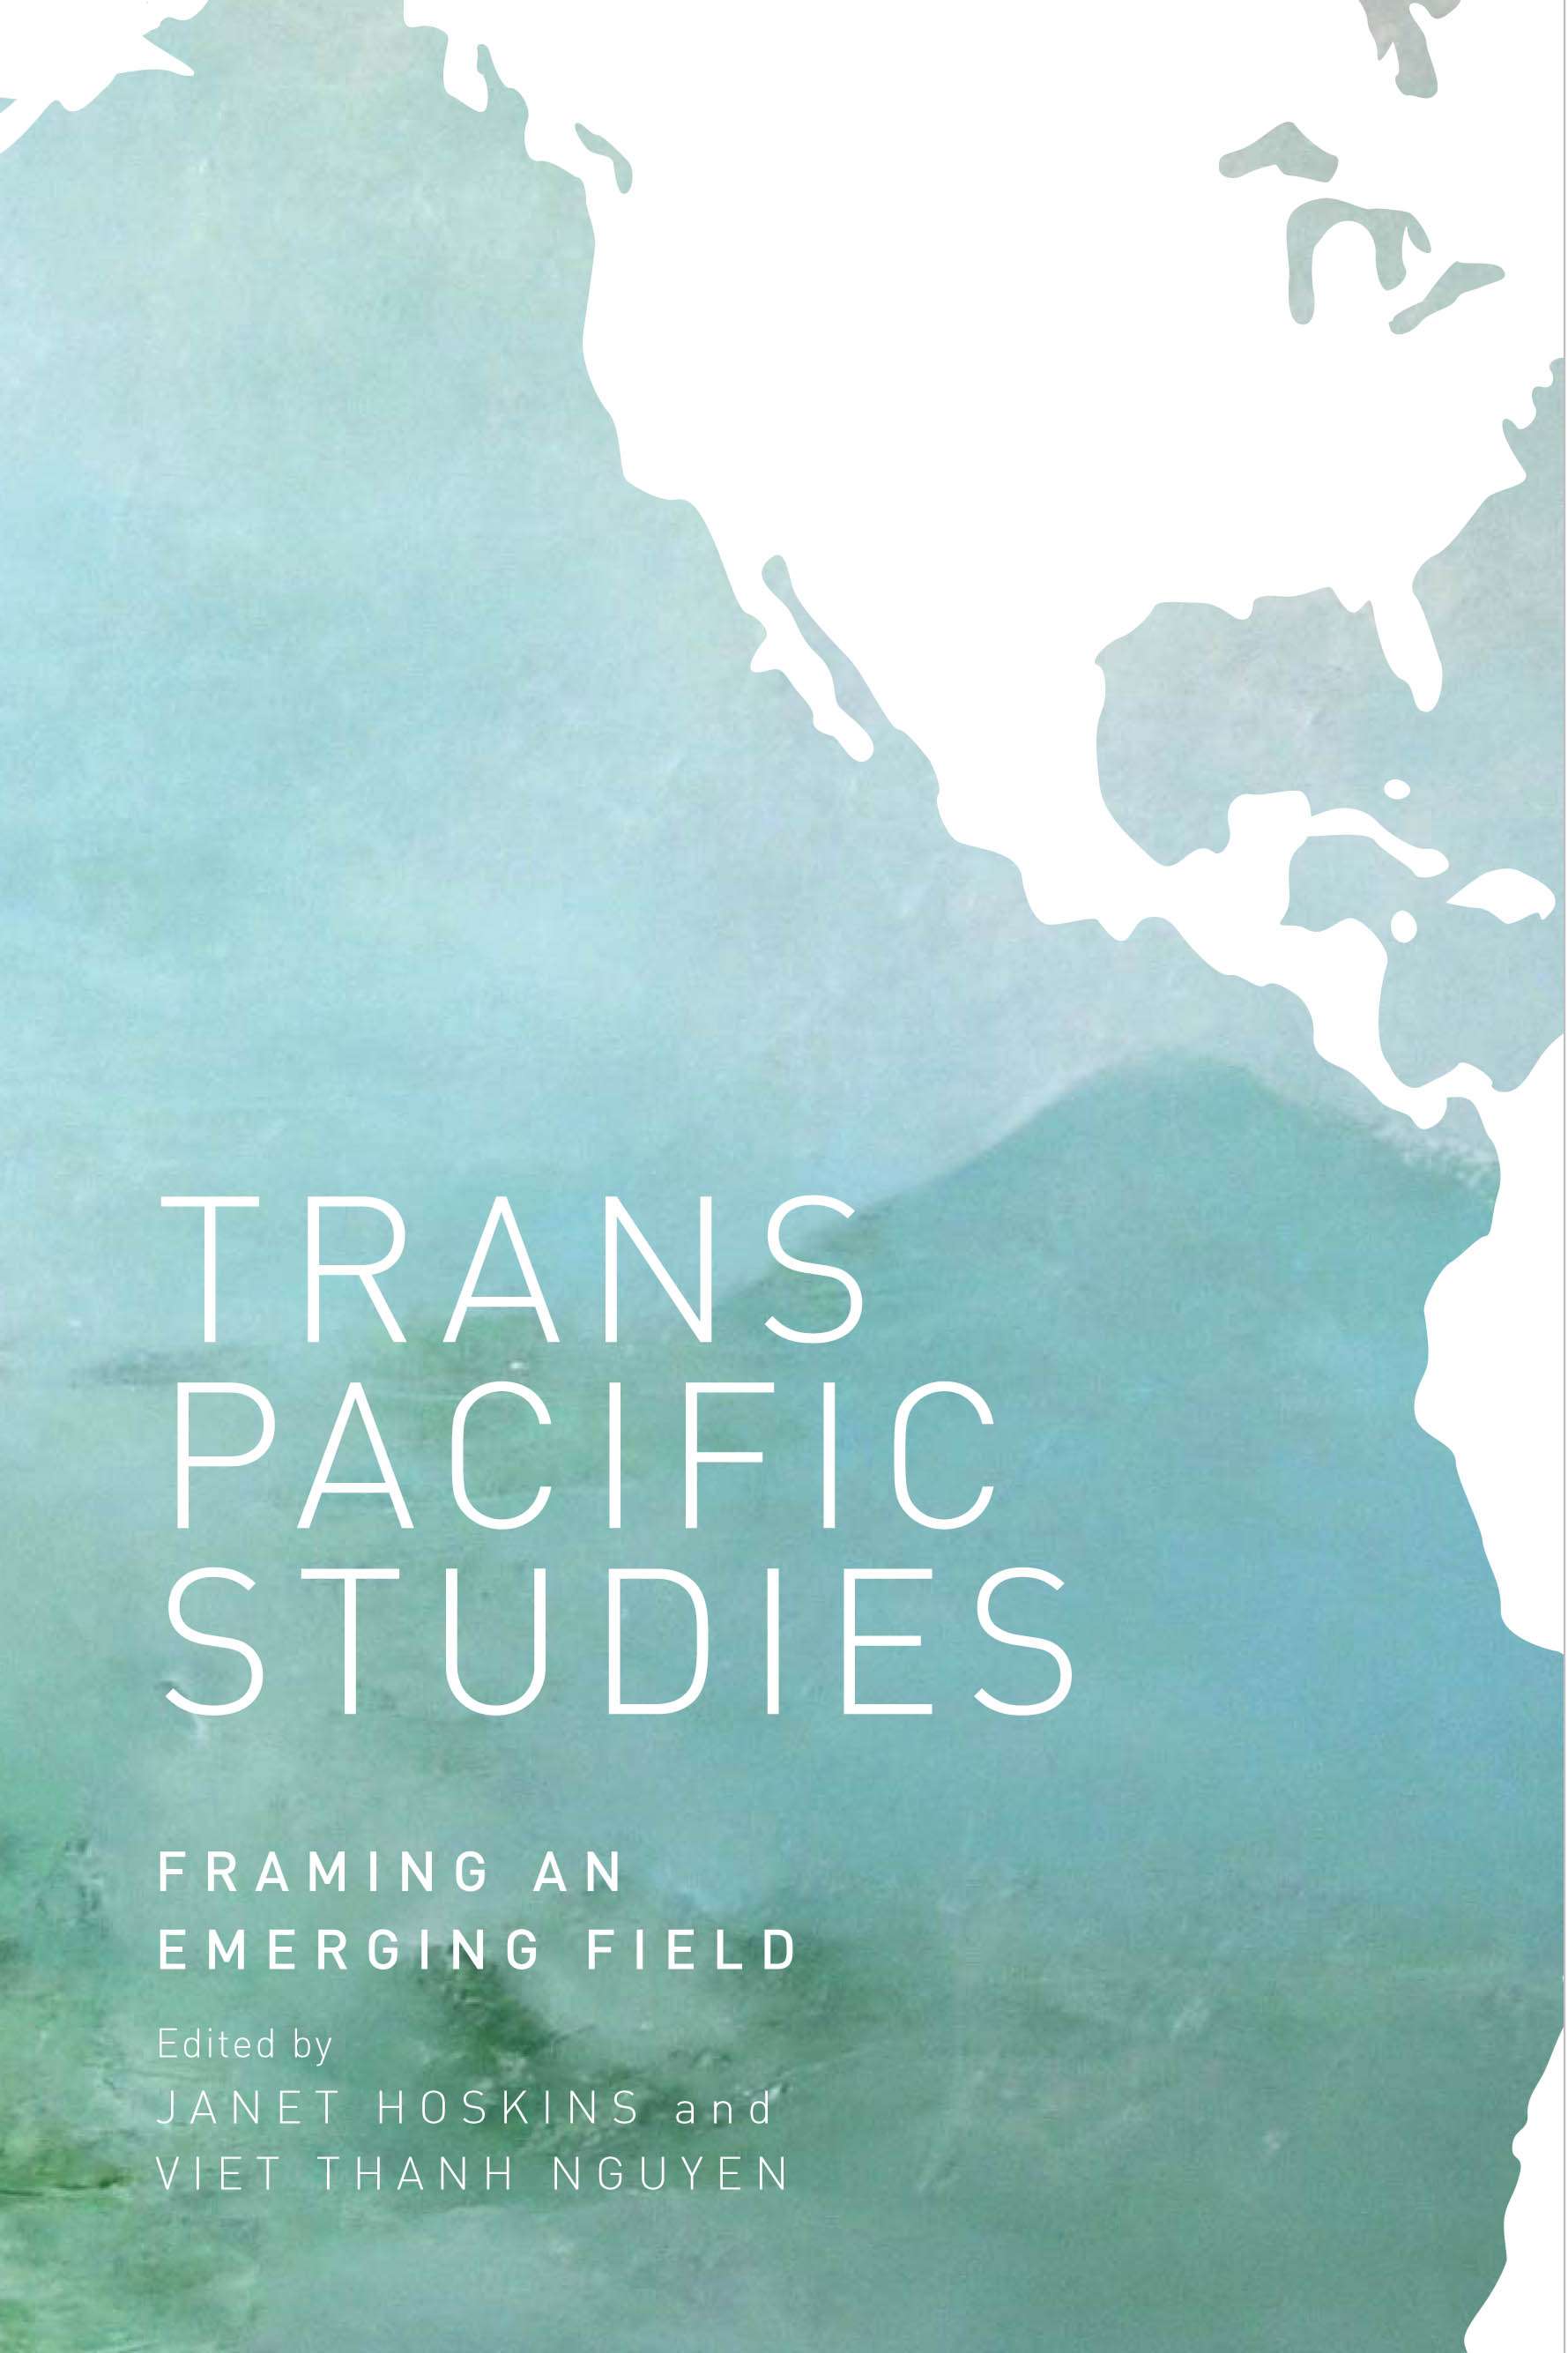 USCE_transpacific-cover_071713_r2.ai